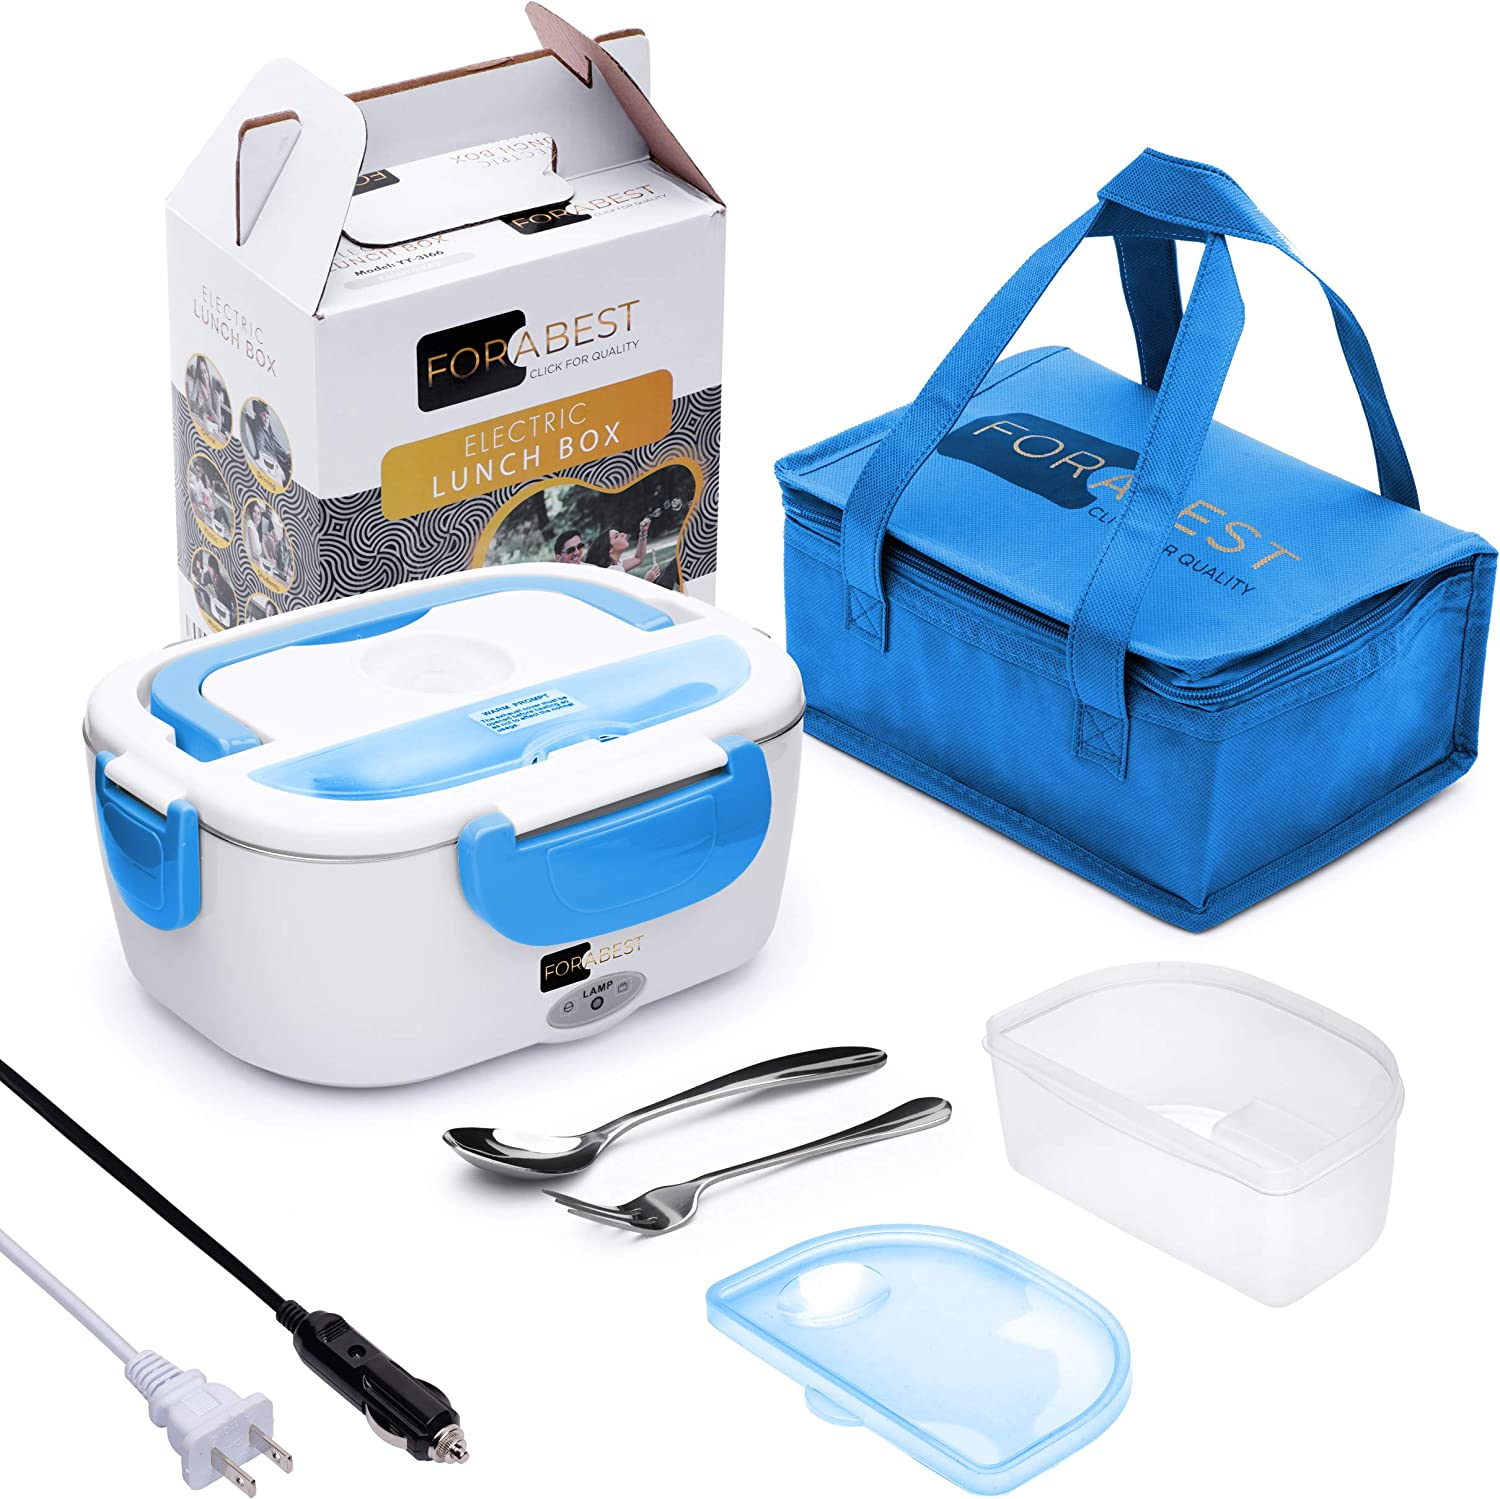 Electric Lunch Box Food Heater - FORABEST 2-In-1 Portable Food Warmer Lunch Box for Car & Home – Leak proof, 2 Compartments, Removable 304 Stainless Steel Container, SS fork & spoon and Carry Bag